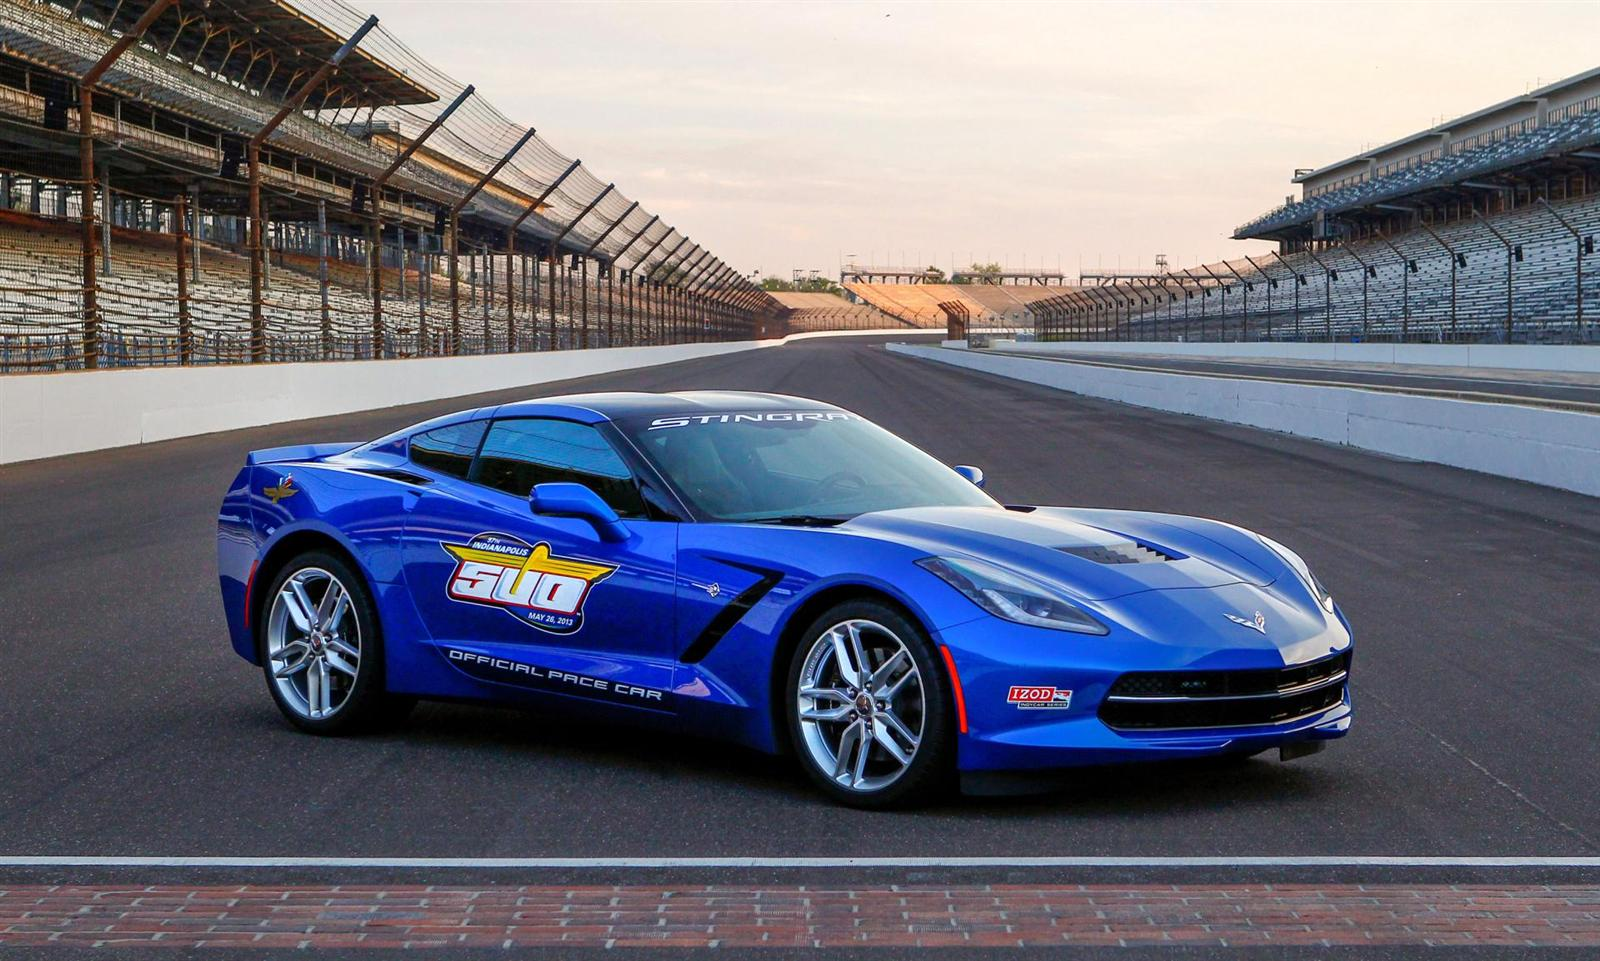 2014 Chevrolet Corvette Stingray Indy 500 Pace Car